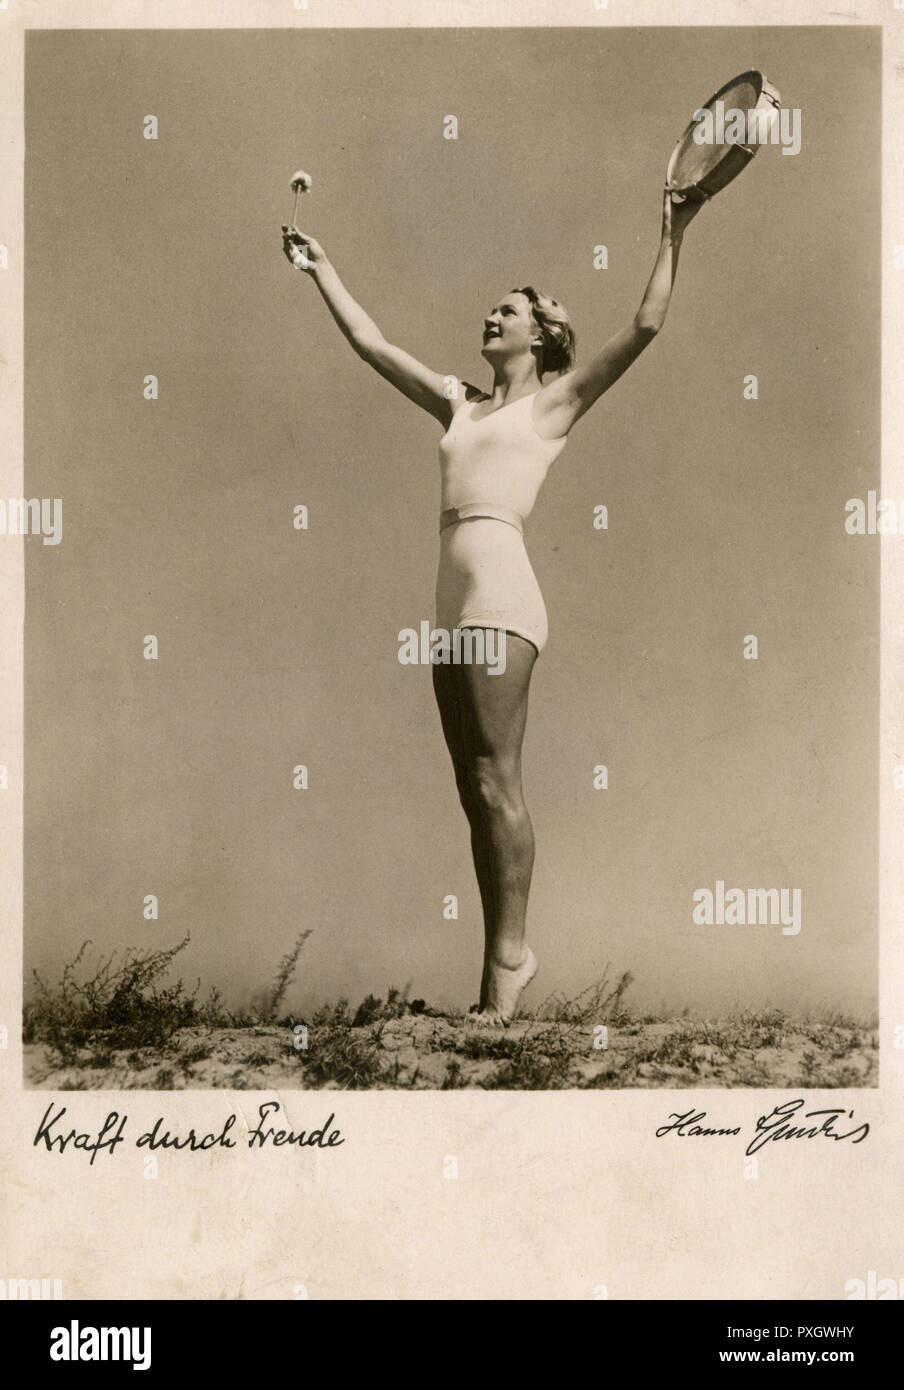 Kraft durch Freude (German for Strength through Joy, abbreviated KdF) was a large state-operated leisure organization in Nazi Germany. It was a part of the German Labour Front (Deutsche Arbeitsfront, DAF), the national German labour organization at that time.     Date: circa 1938 - Stock Image